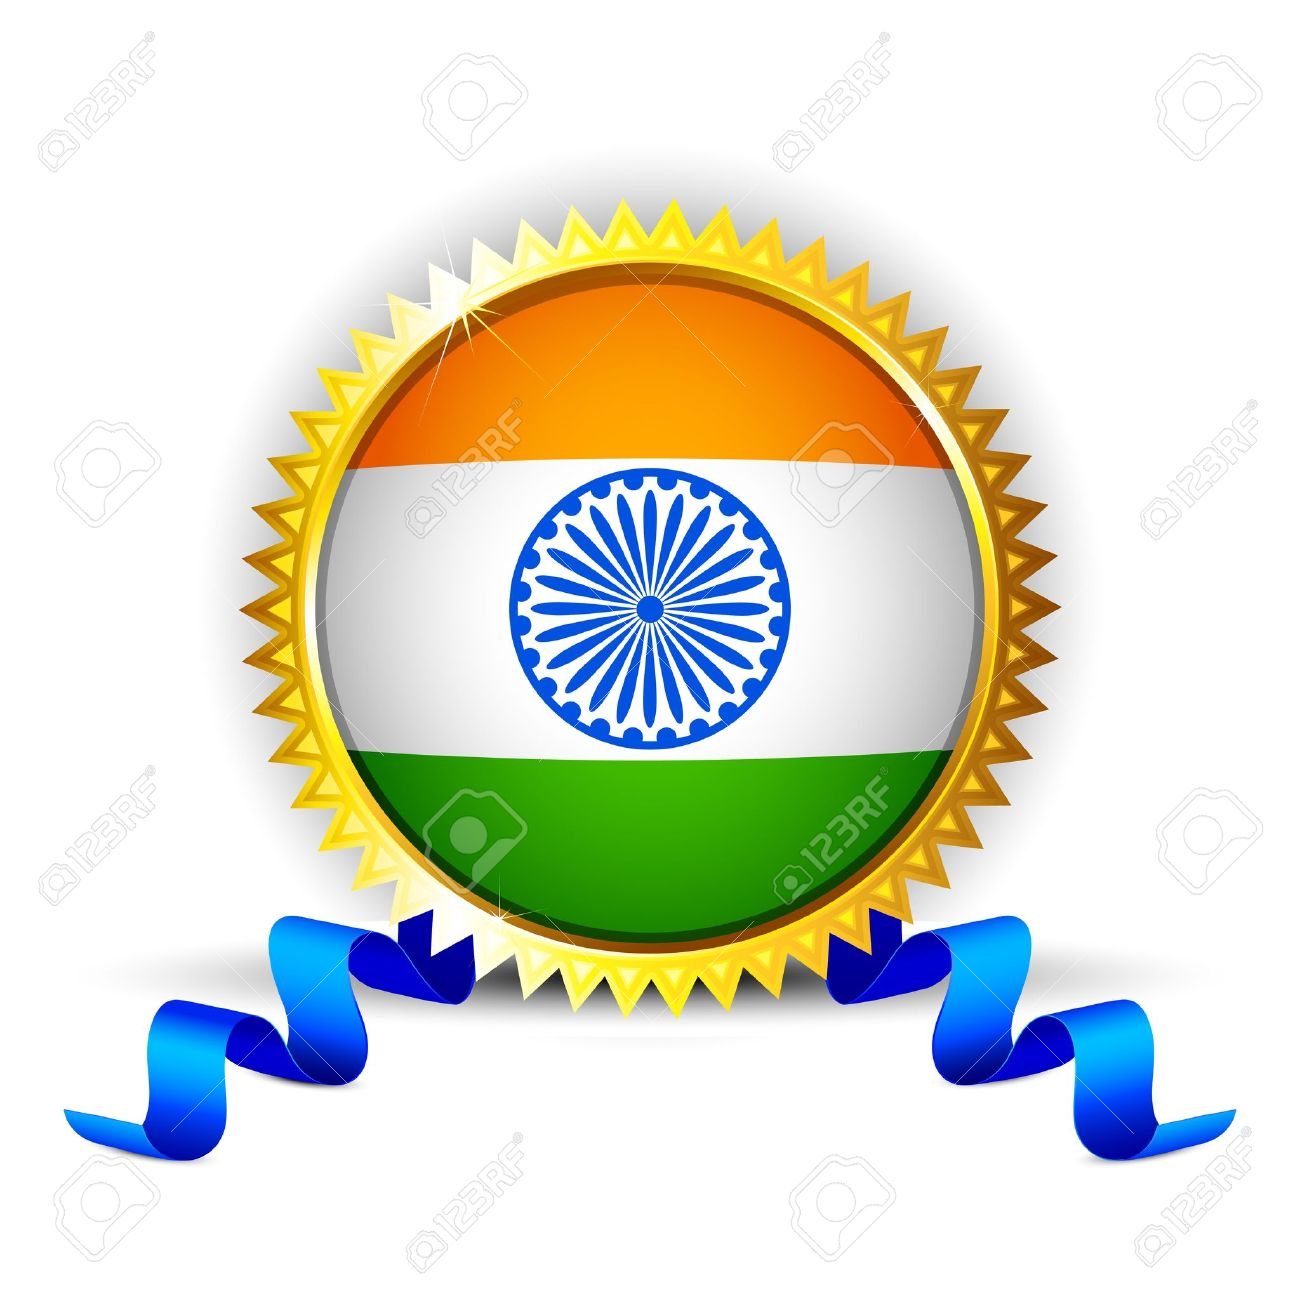 Illustration Of India Tricolor Flag In Badge With Golden Frame.